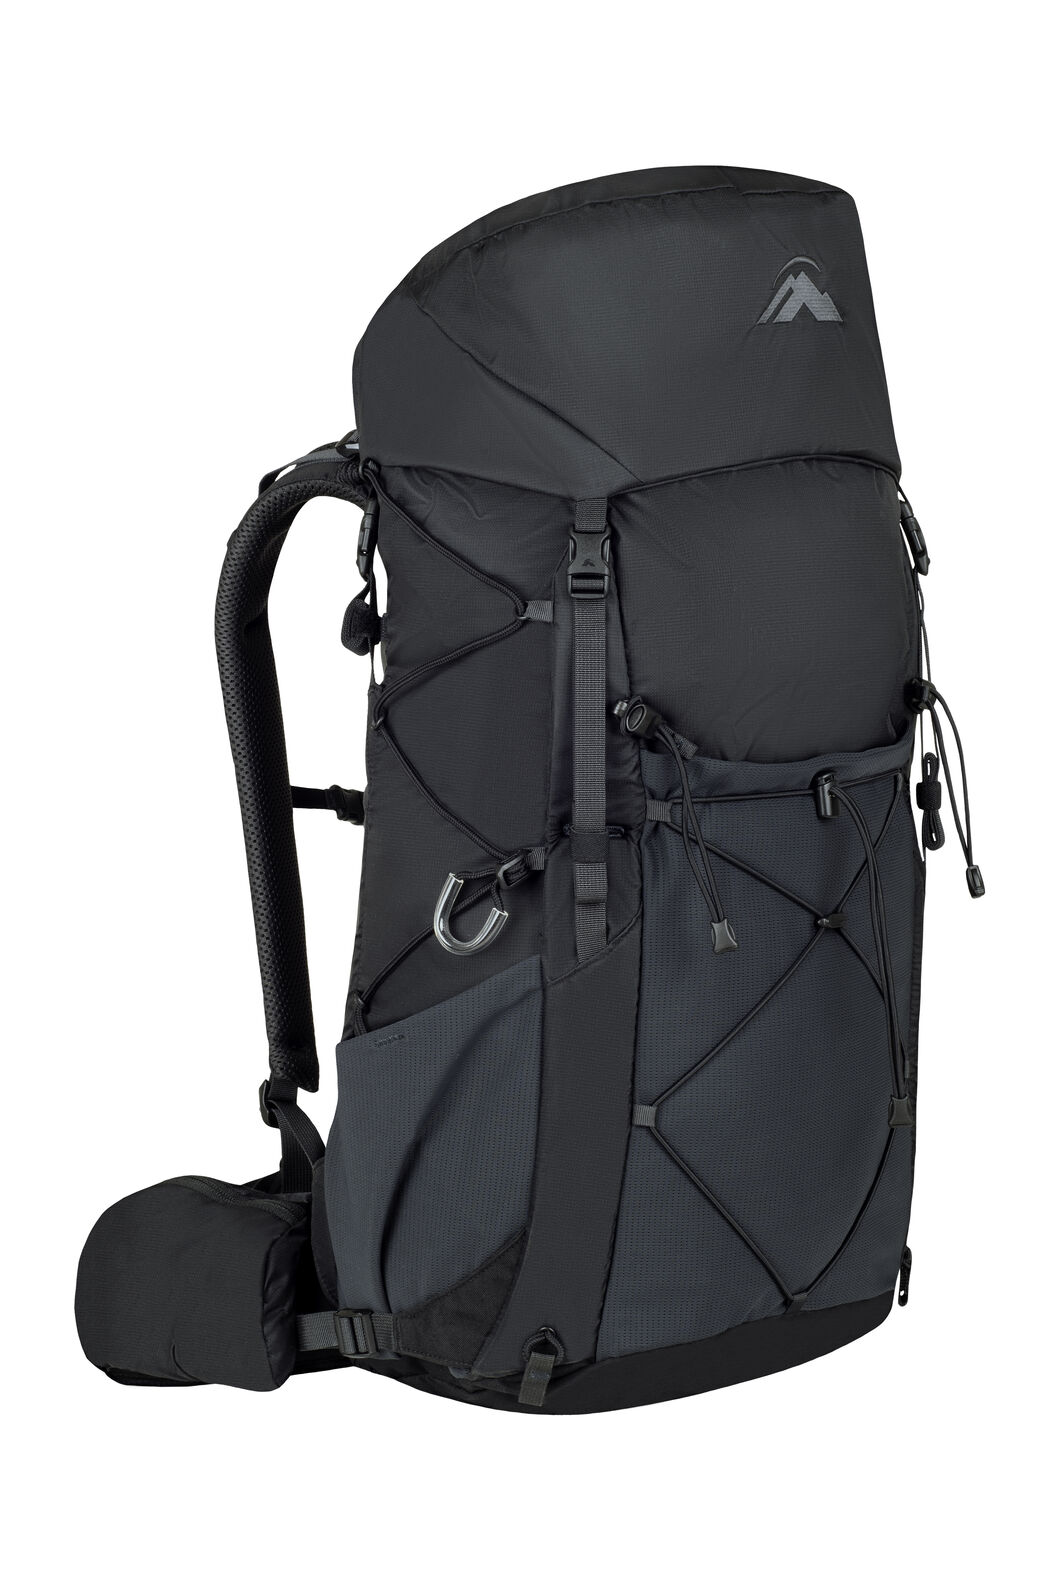 Macpac Fiord 1.1 40L Hiking Pack, Black/Black, hi-res